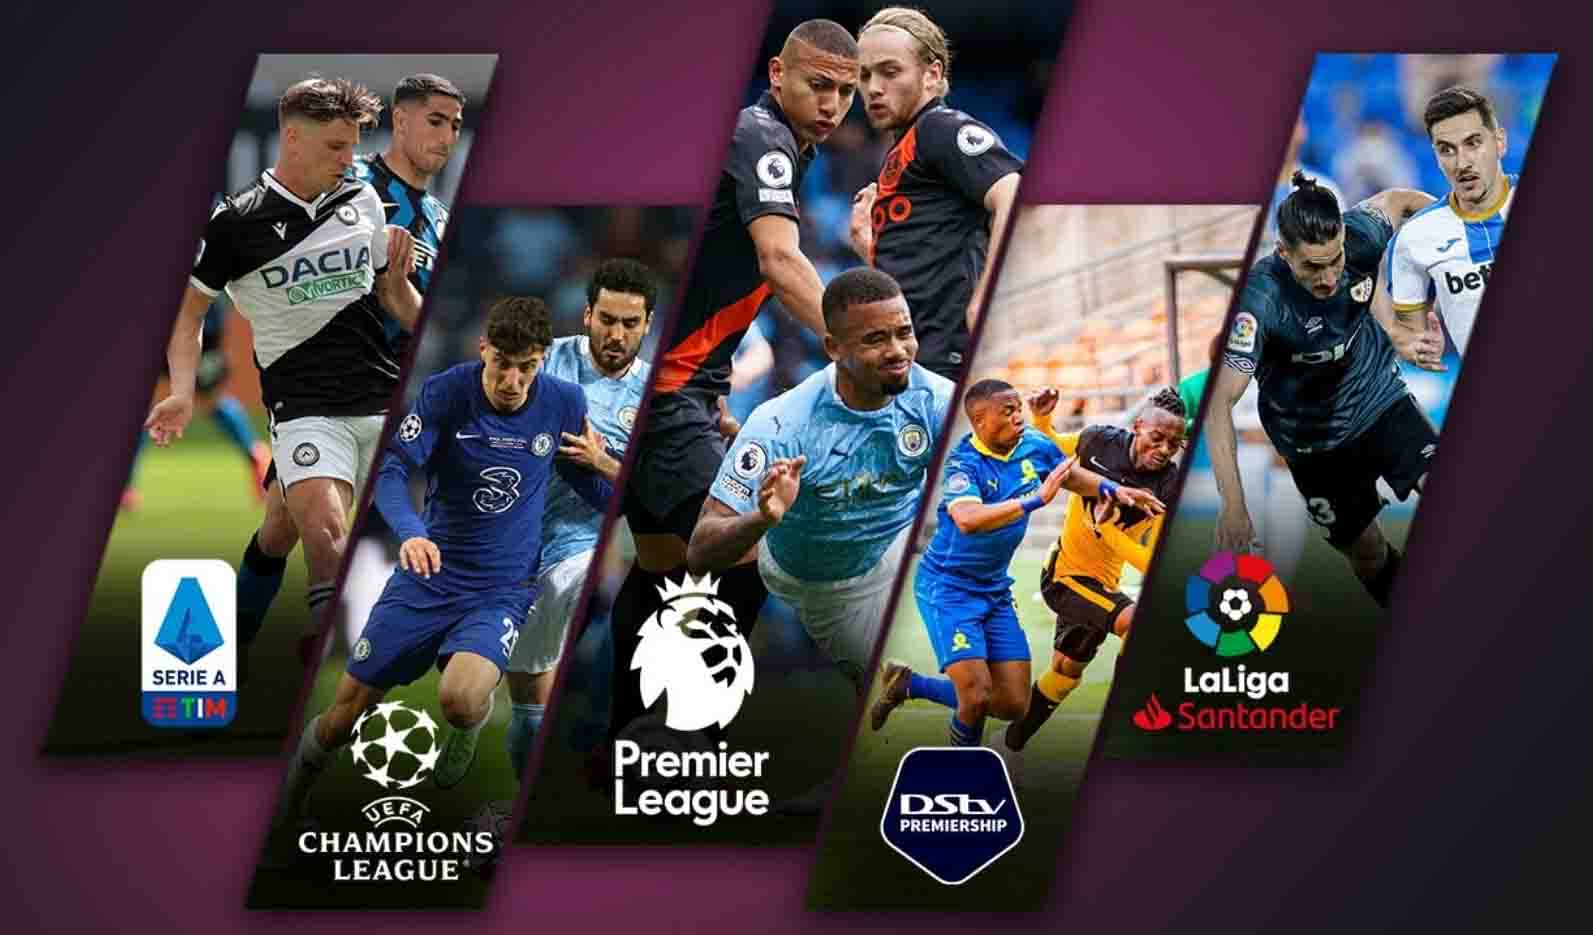 Enjoy all the English Premier League action on Showmax